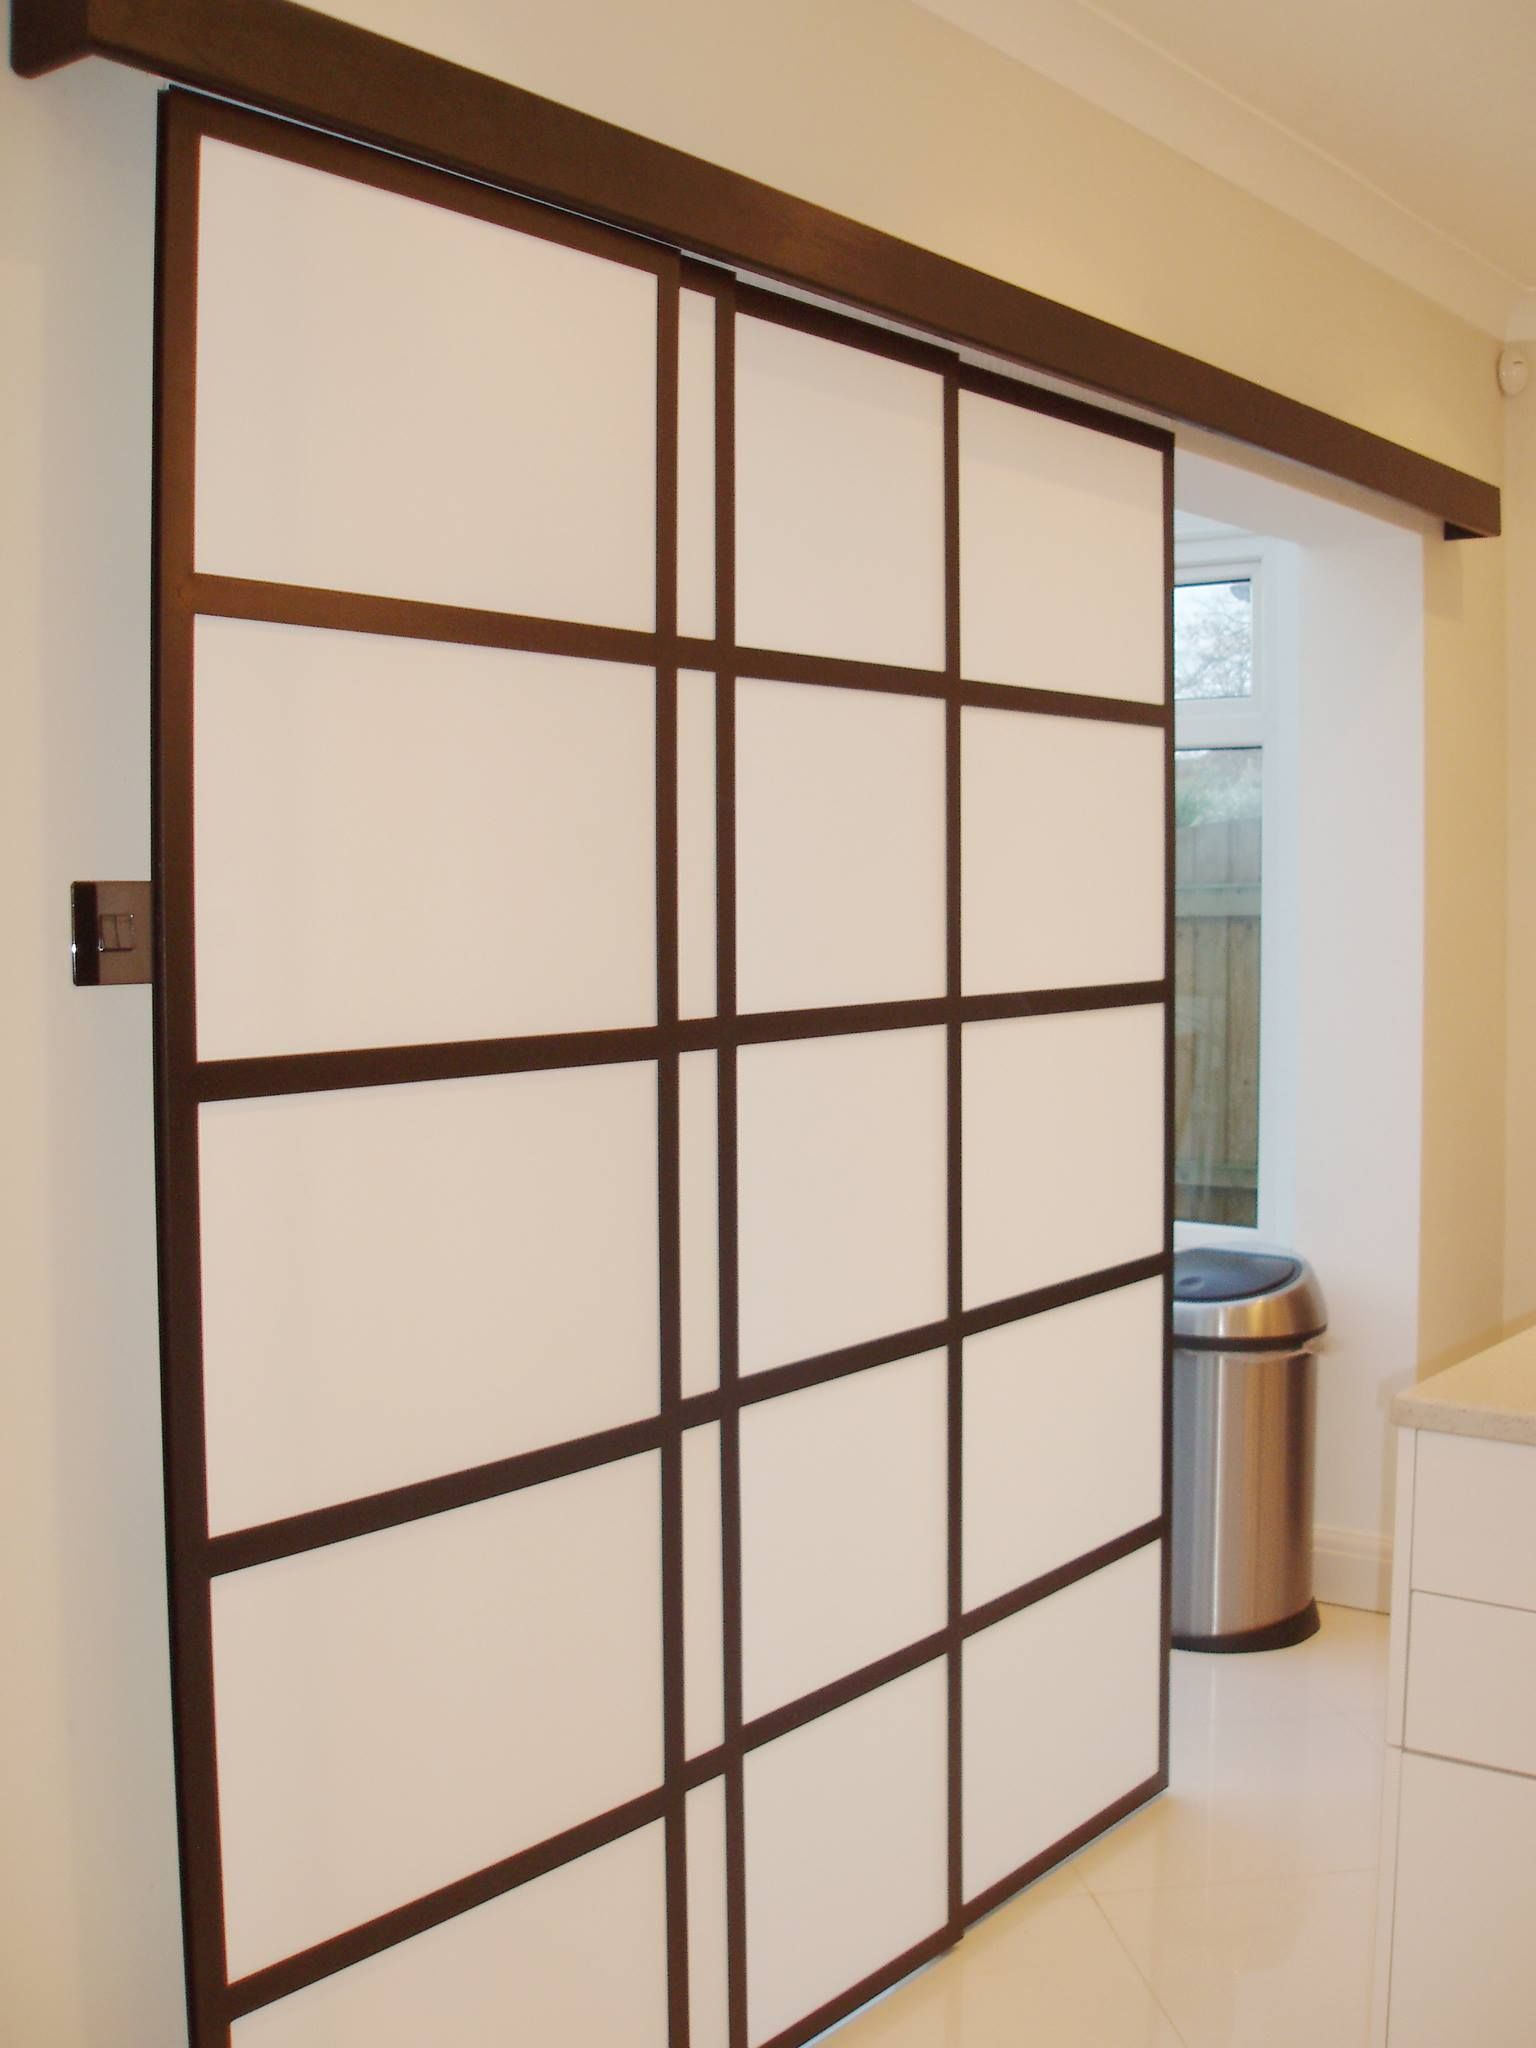 Japanese Shoji Panel blinds Room Dividers Window